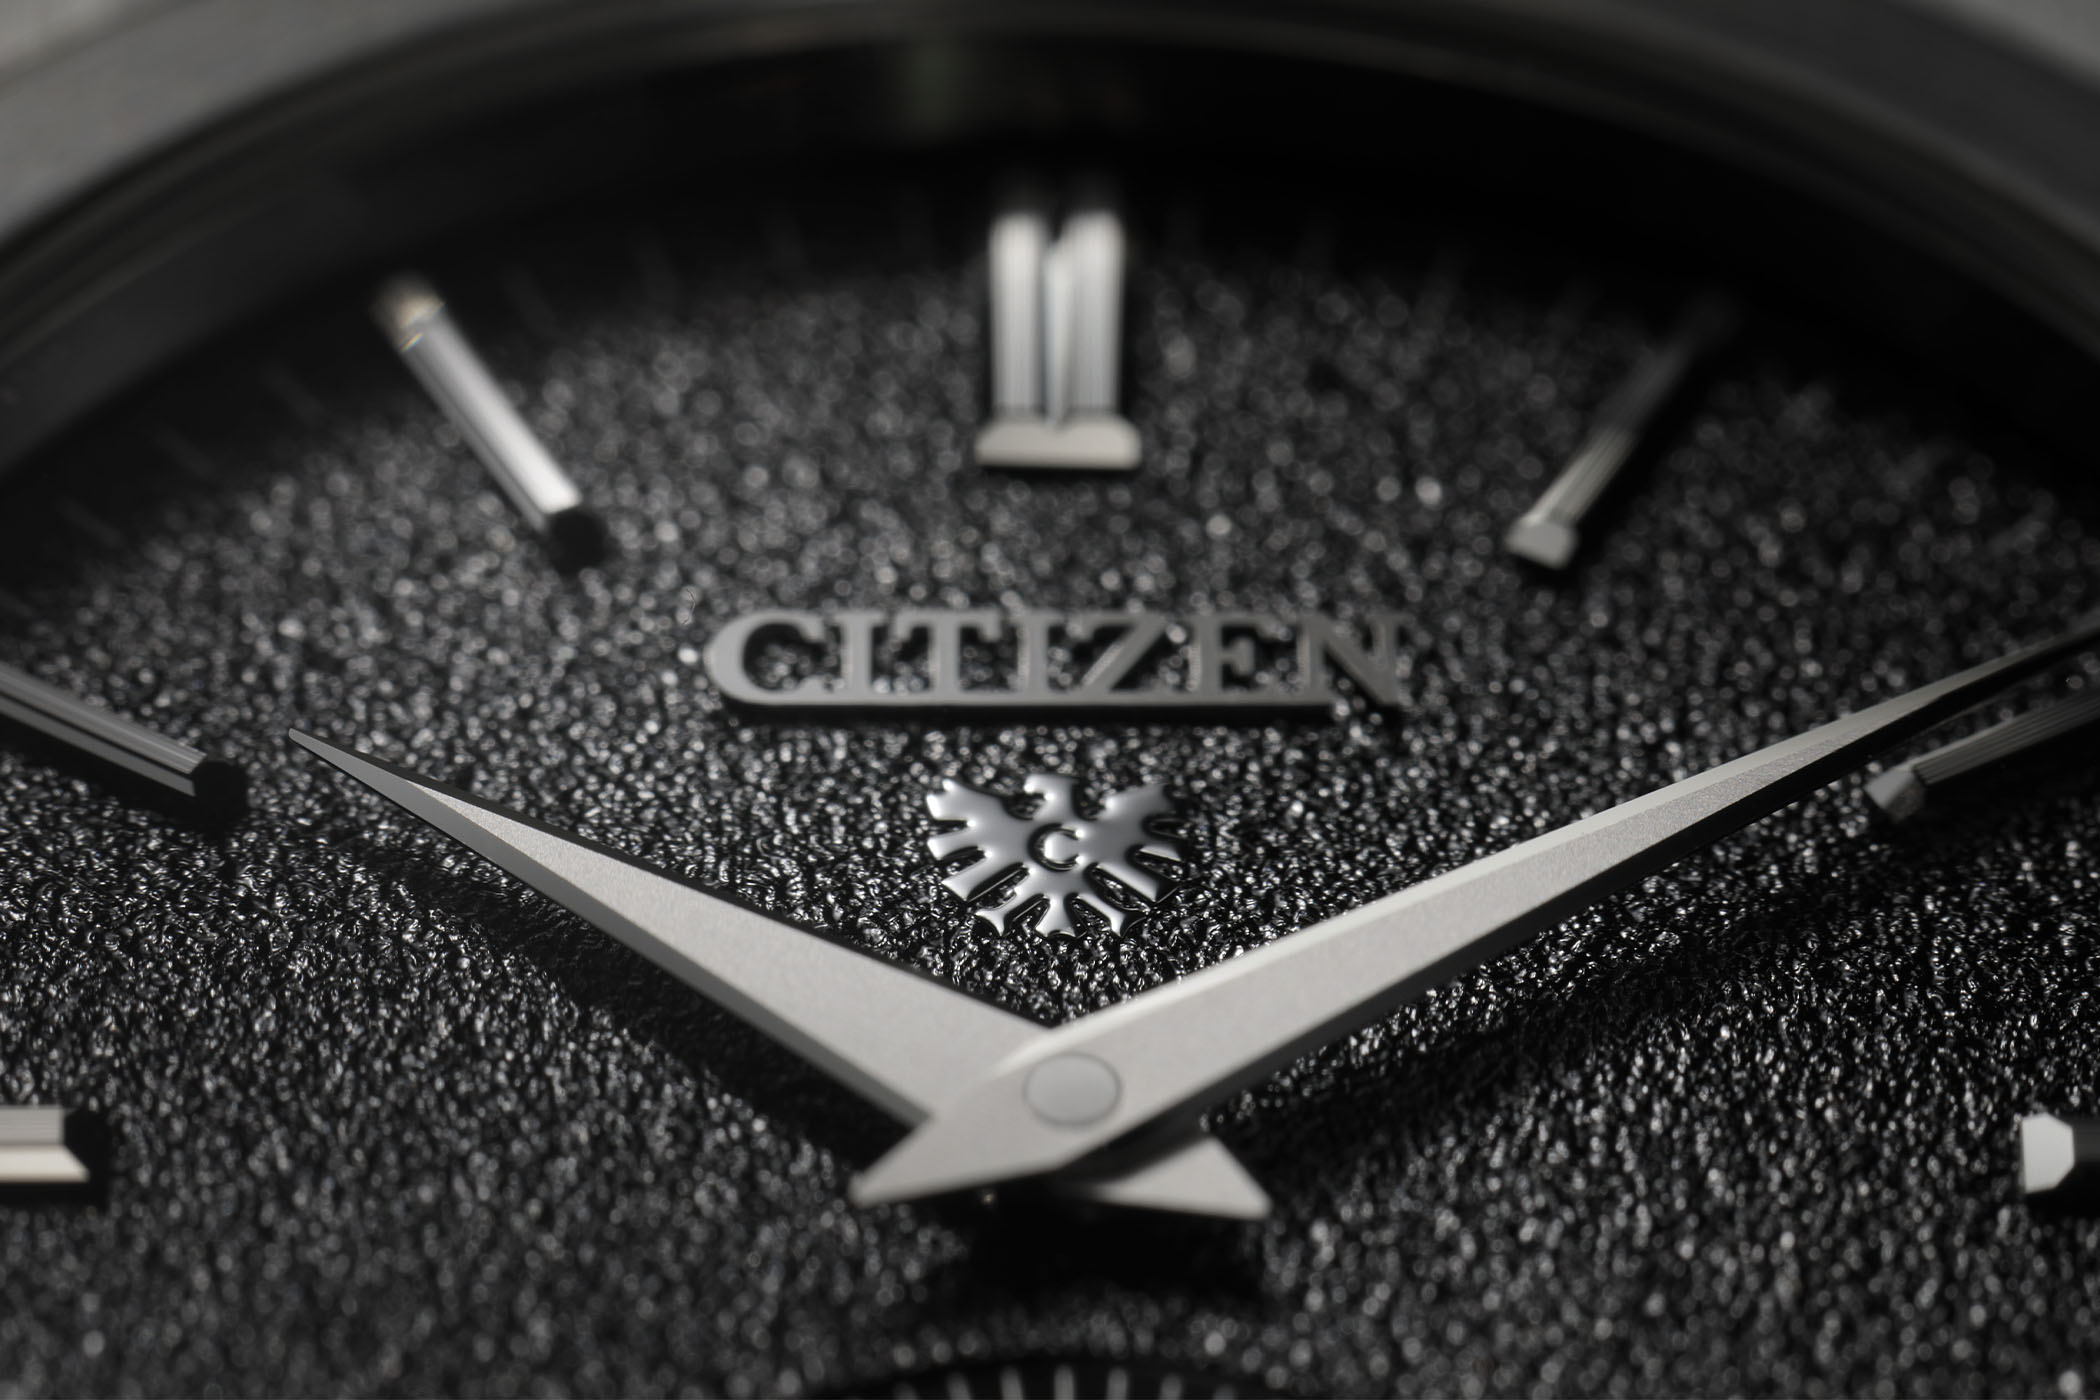 2021 Citizen Mechanical Model Calibre 0200 - NC0200-90E